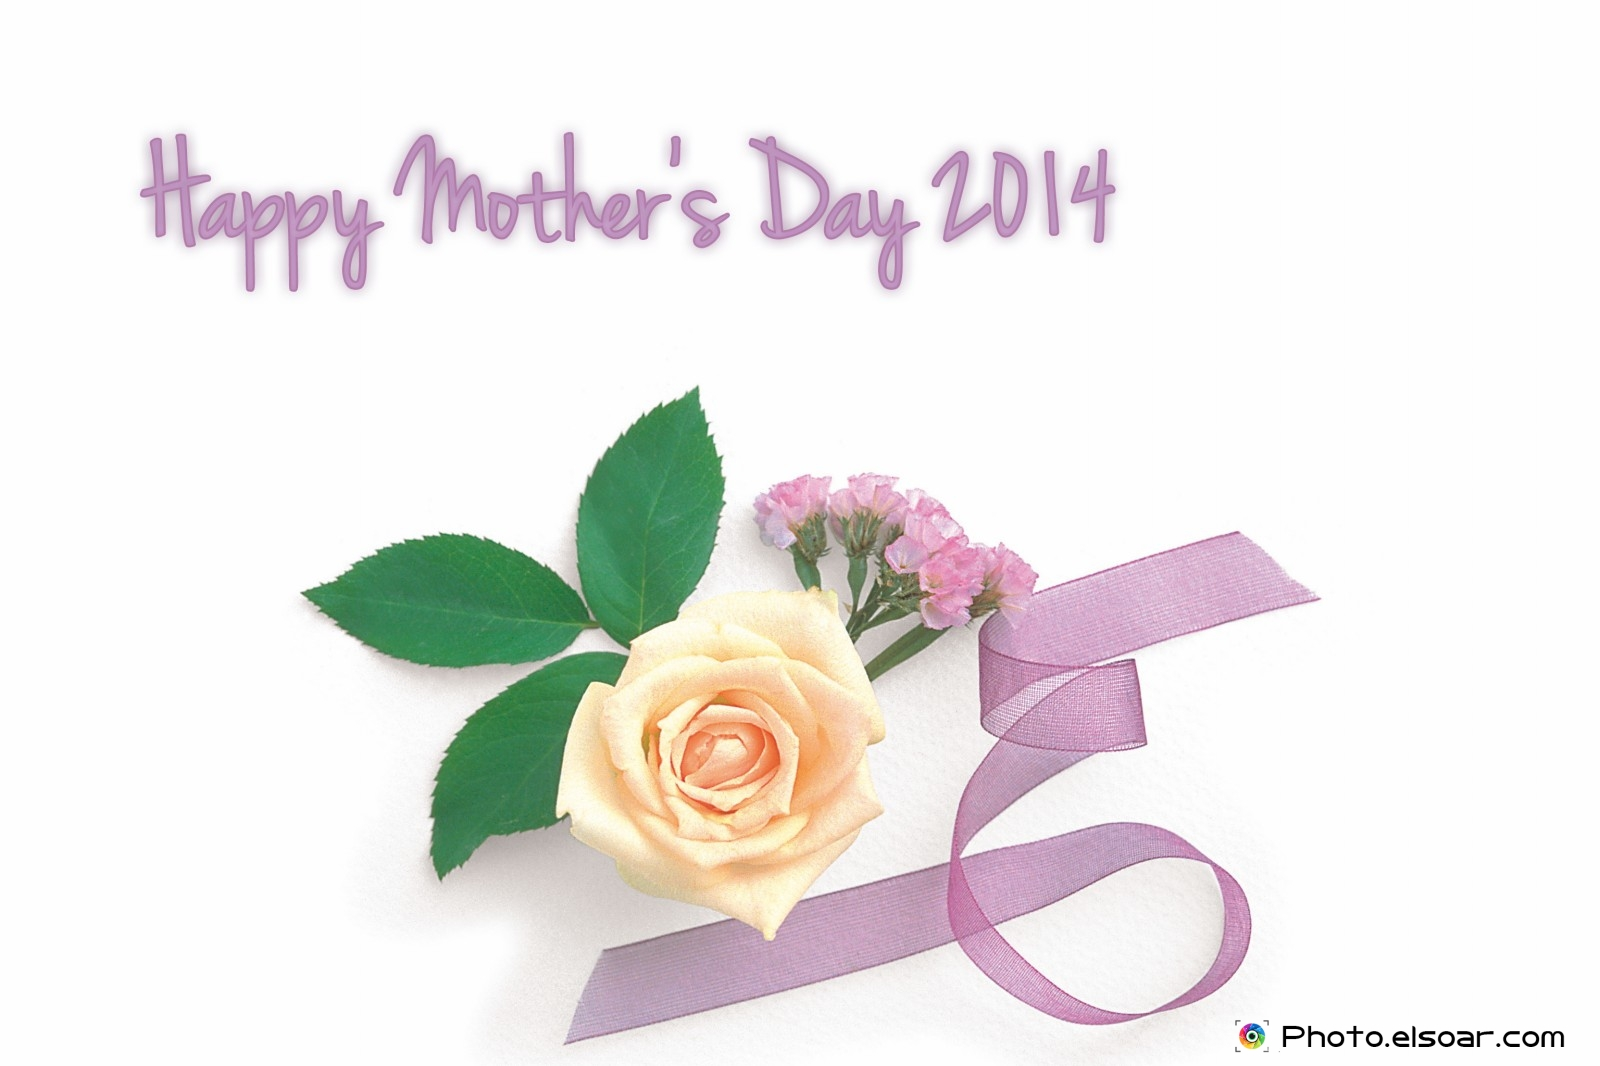 Happy Mothers Day Wallpaper 2014 D 1600x1066